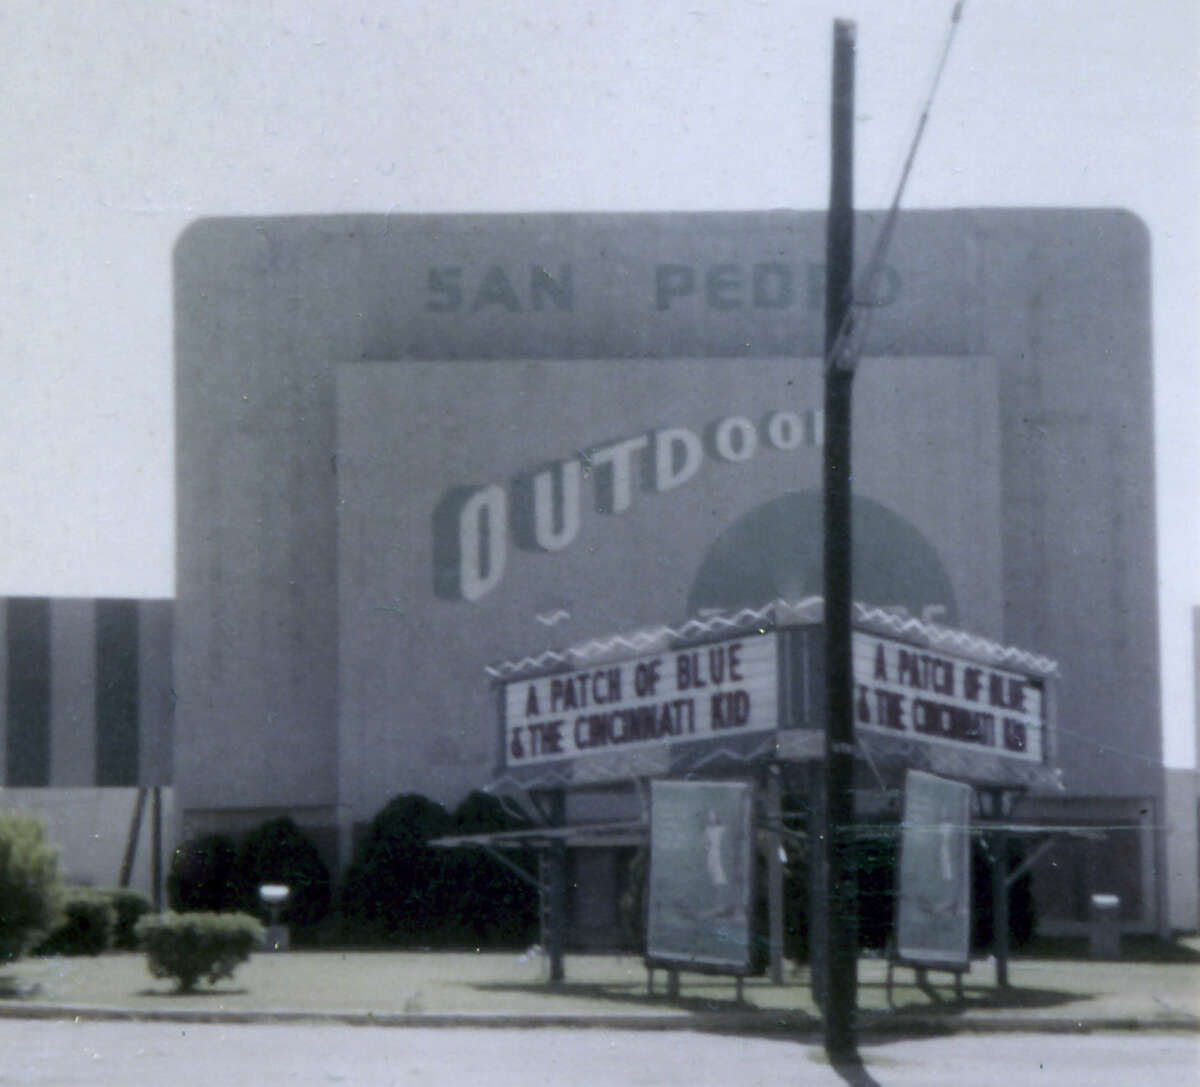 The San Pedro Outdoor was a drive-in built in 1948 and purchased by Louis Santikos in 1960. It was demolished in 1984 to build the indoor multiscreen Embassy that opened in 1987.